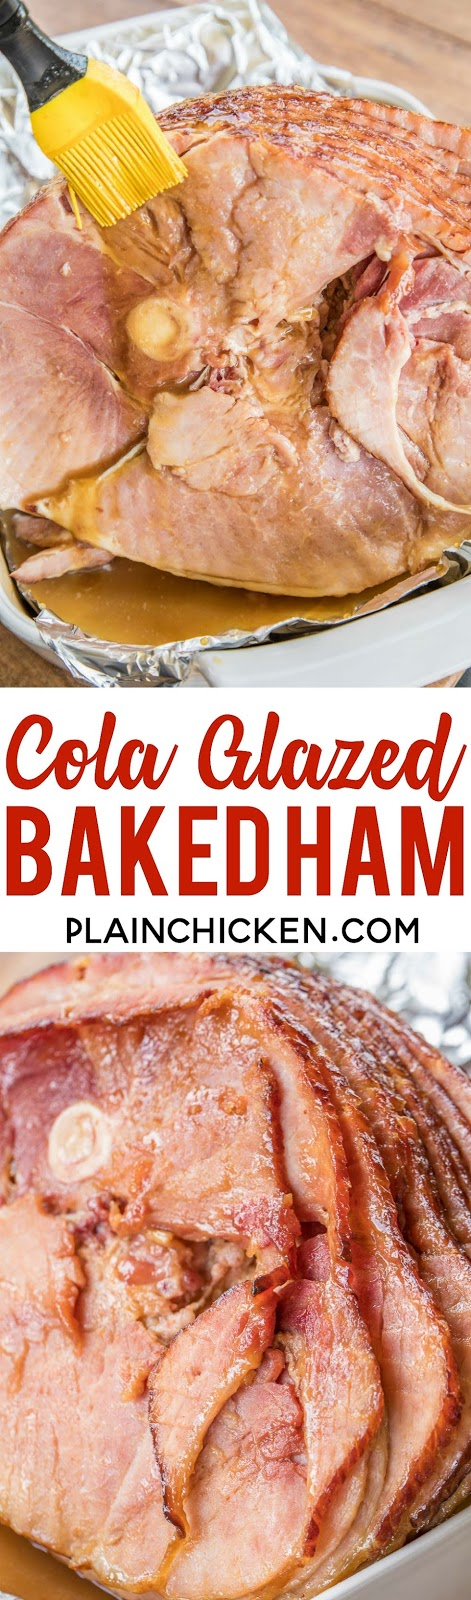 Cola Glazed Baked Ham - you'll never buy a fancy store-bought honey glazed ham again! Only 3 ingredients in the glaze - brown sugar, dijon mustard and cola. Baste the ham as it bakes to get maximum flavor. Don't forget to baste in-between the slices. This ham is always a hit! It is 1000% better than that fancy store bought ham. YUM! #ham #hamrecipe #bakedham #holidayham #christmasham